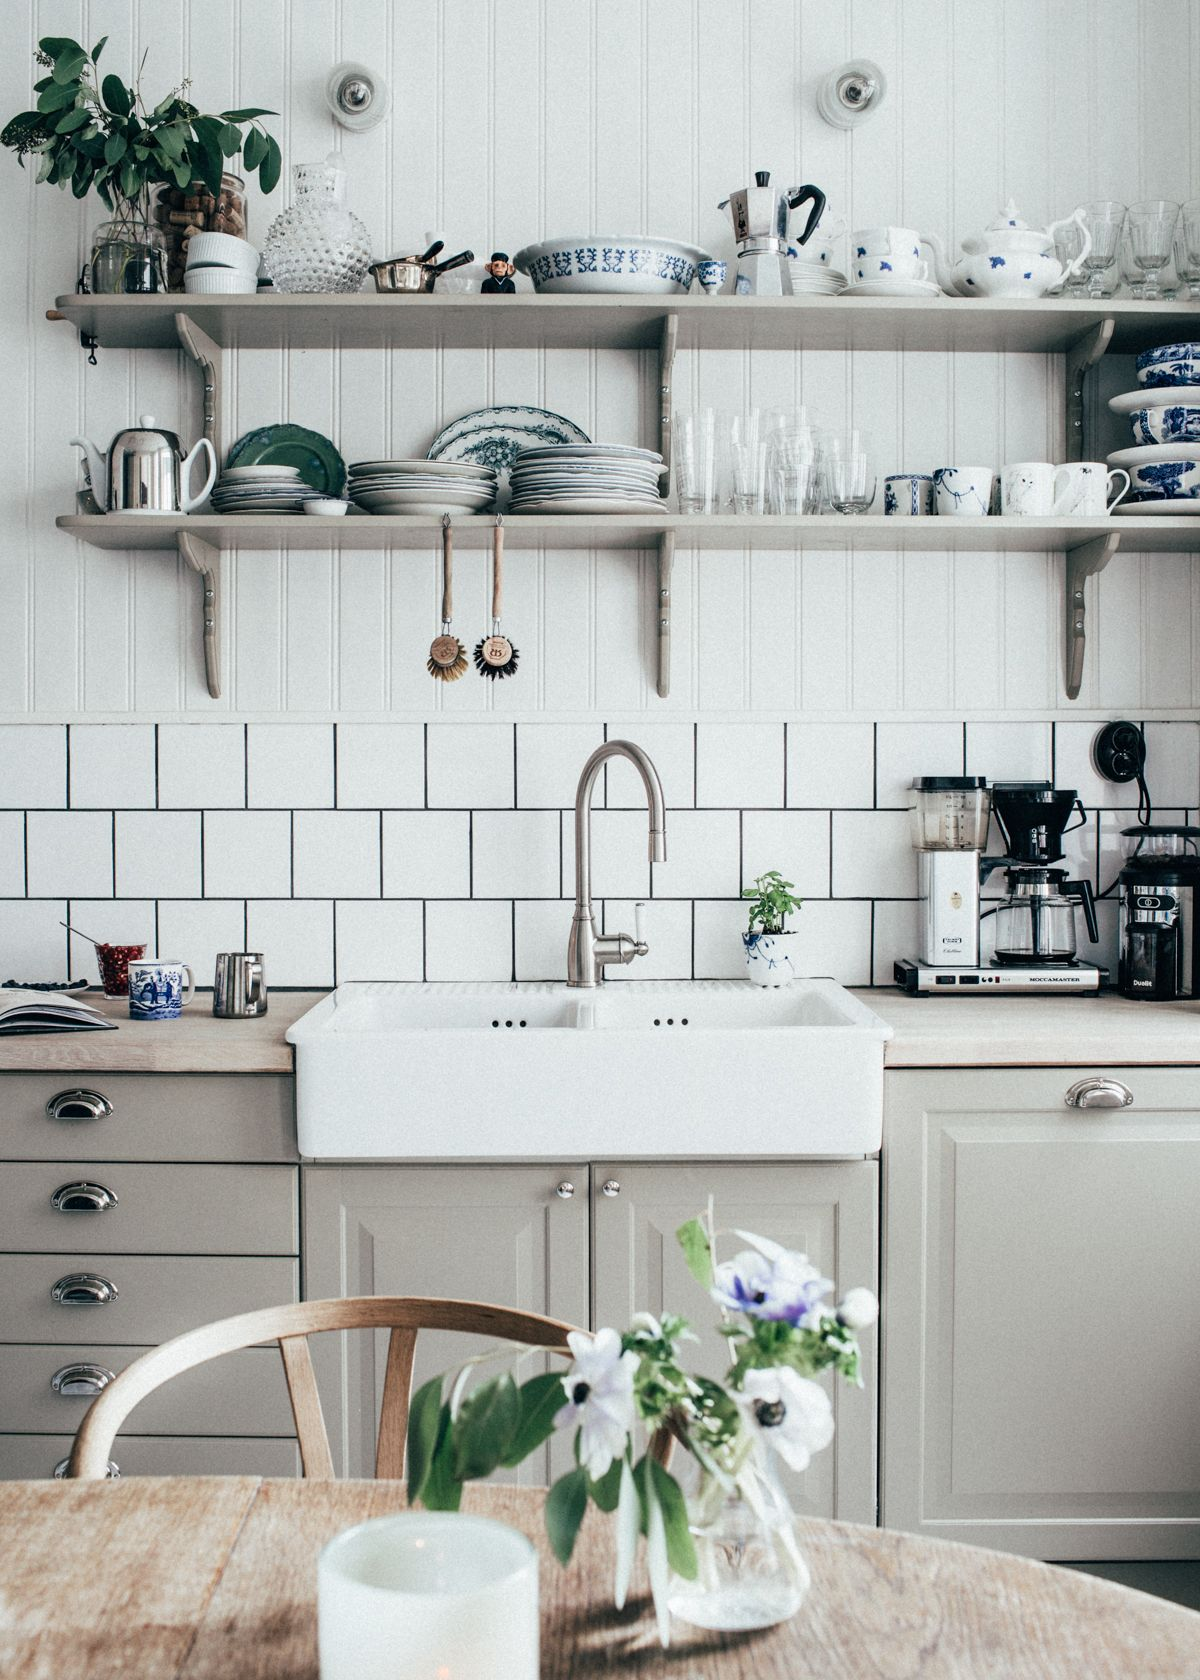 stylist design kitchen tiles designs. Scandinavian Kitchen stylist Home Of Johanna Bradford Ideas To Decorate Design